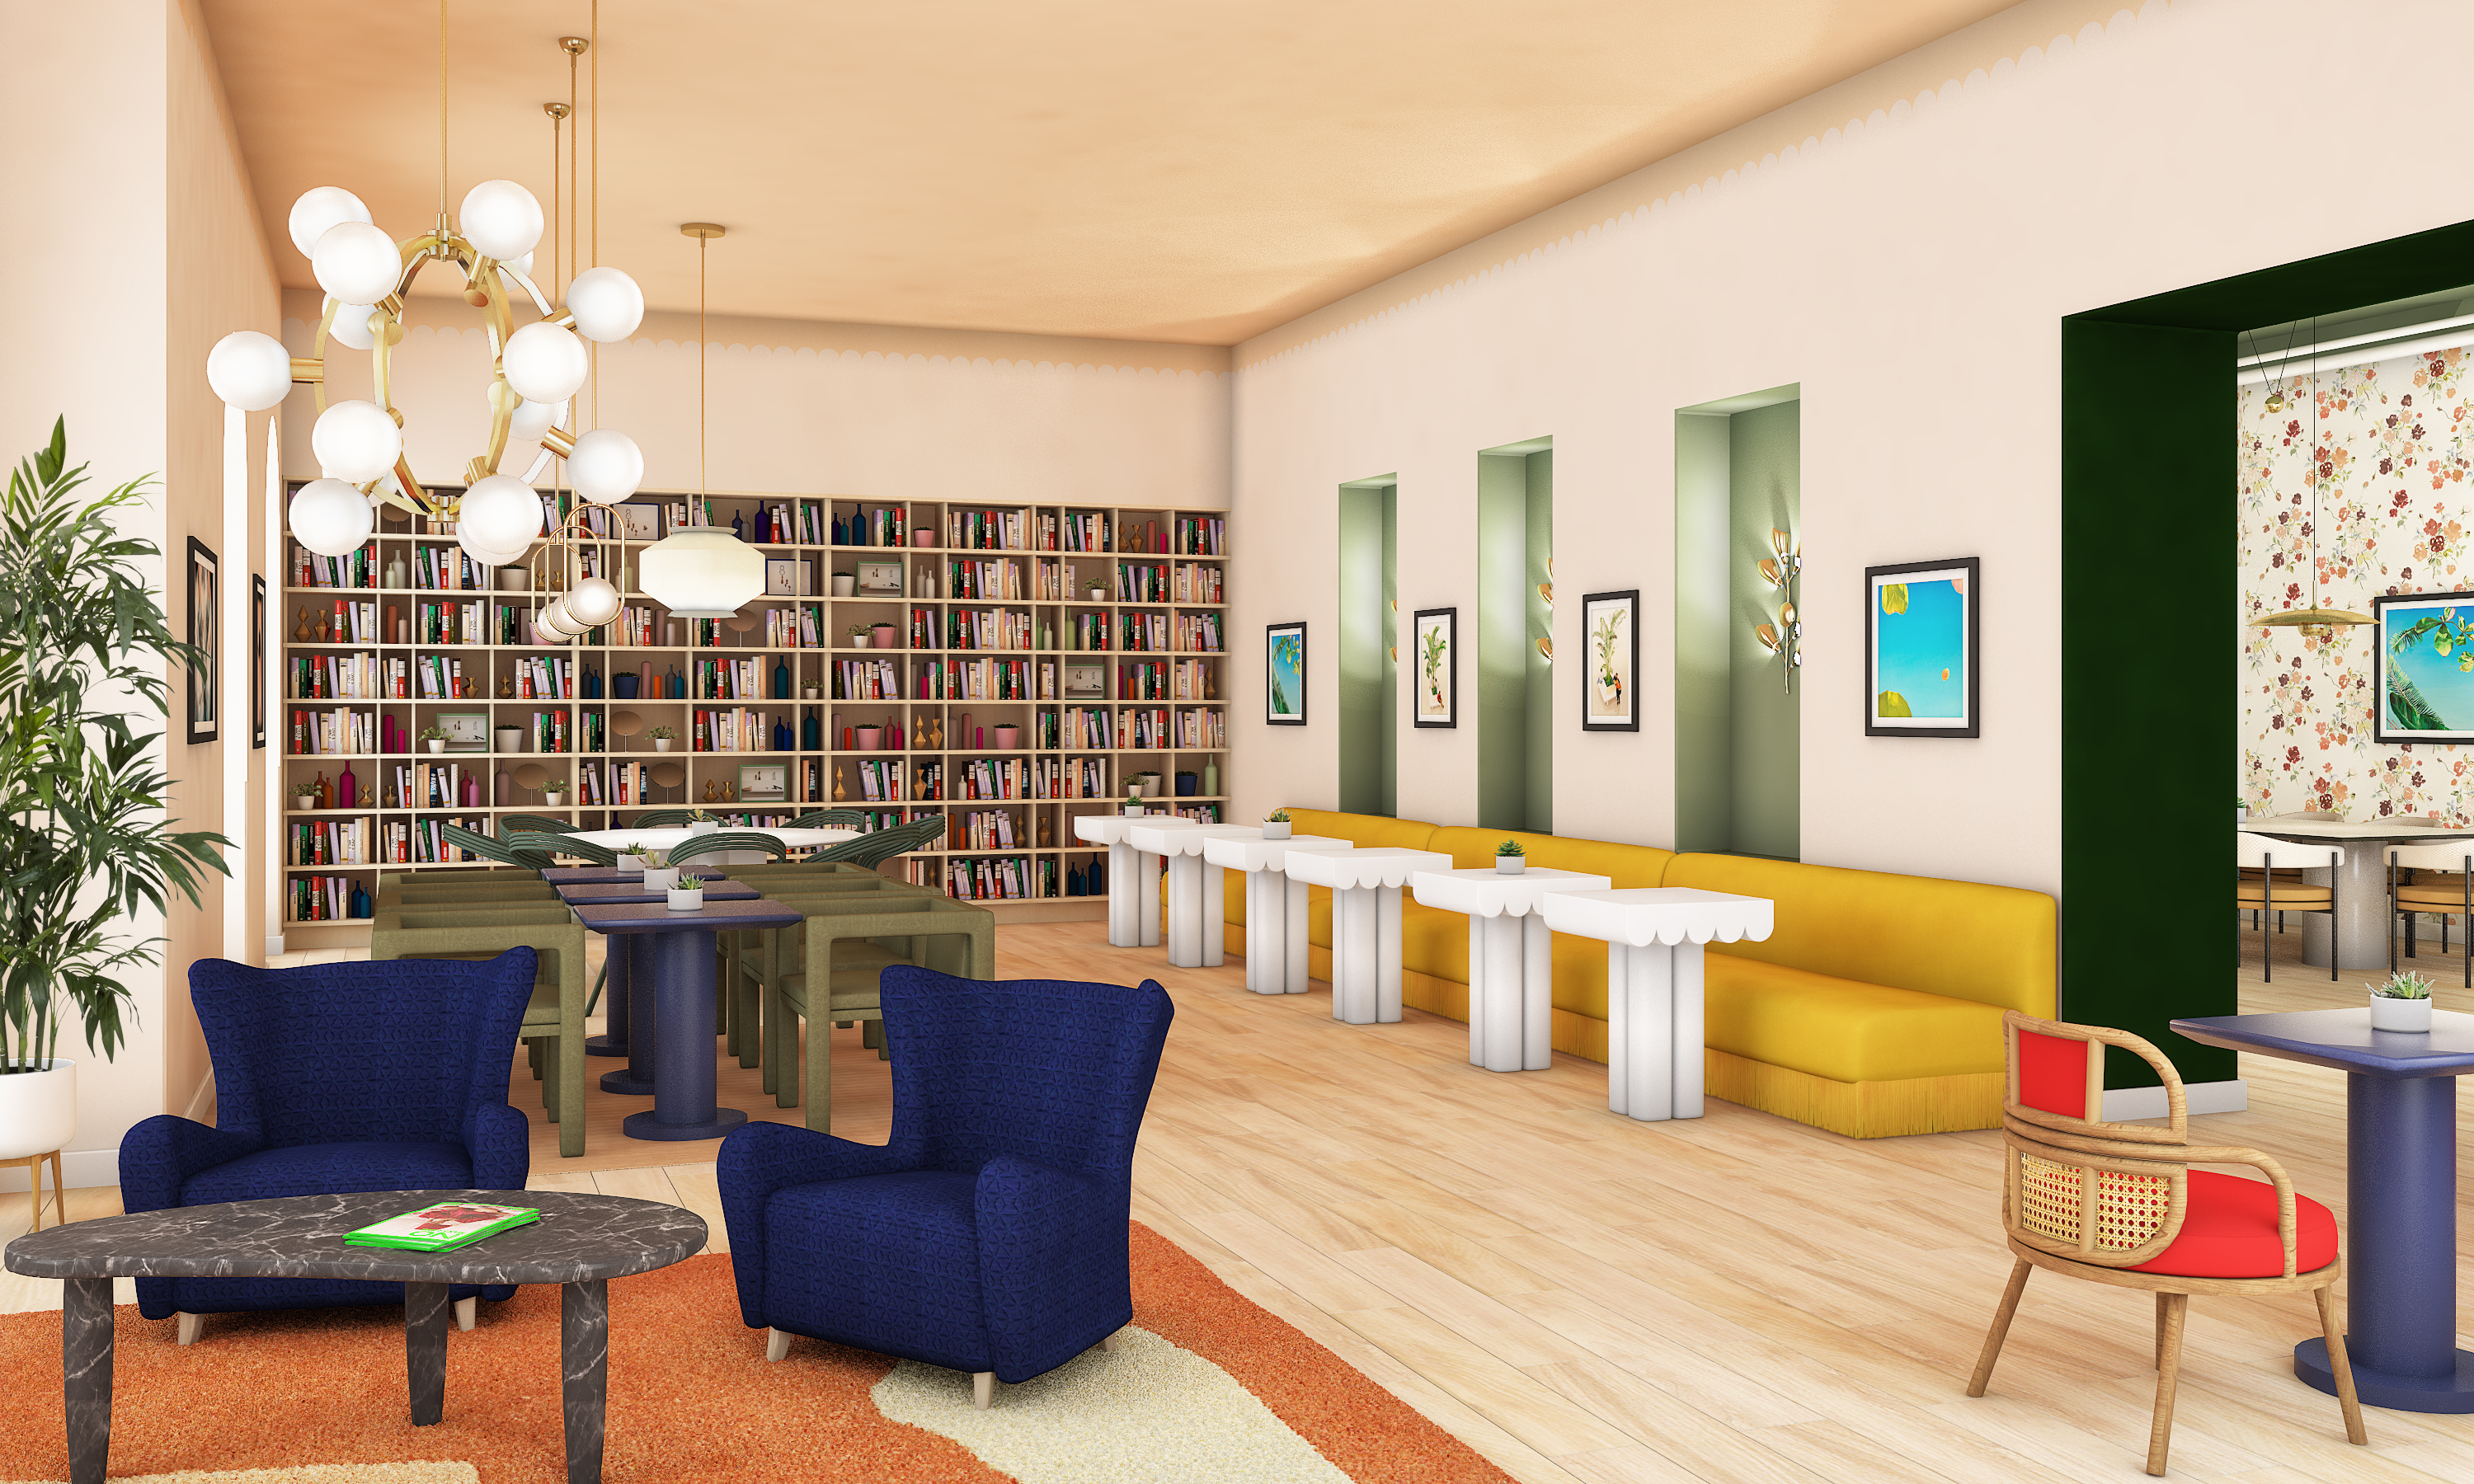 Rendering of the library at The Wing Upper West Side